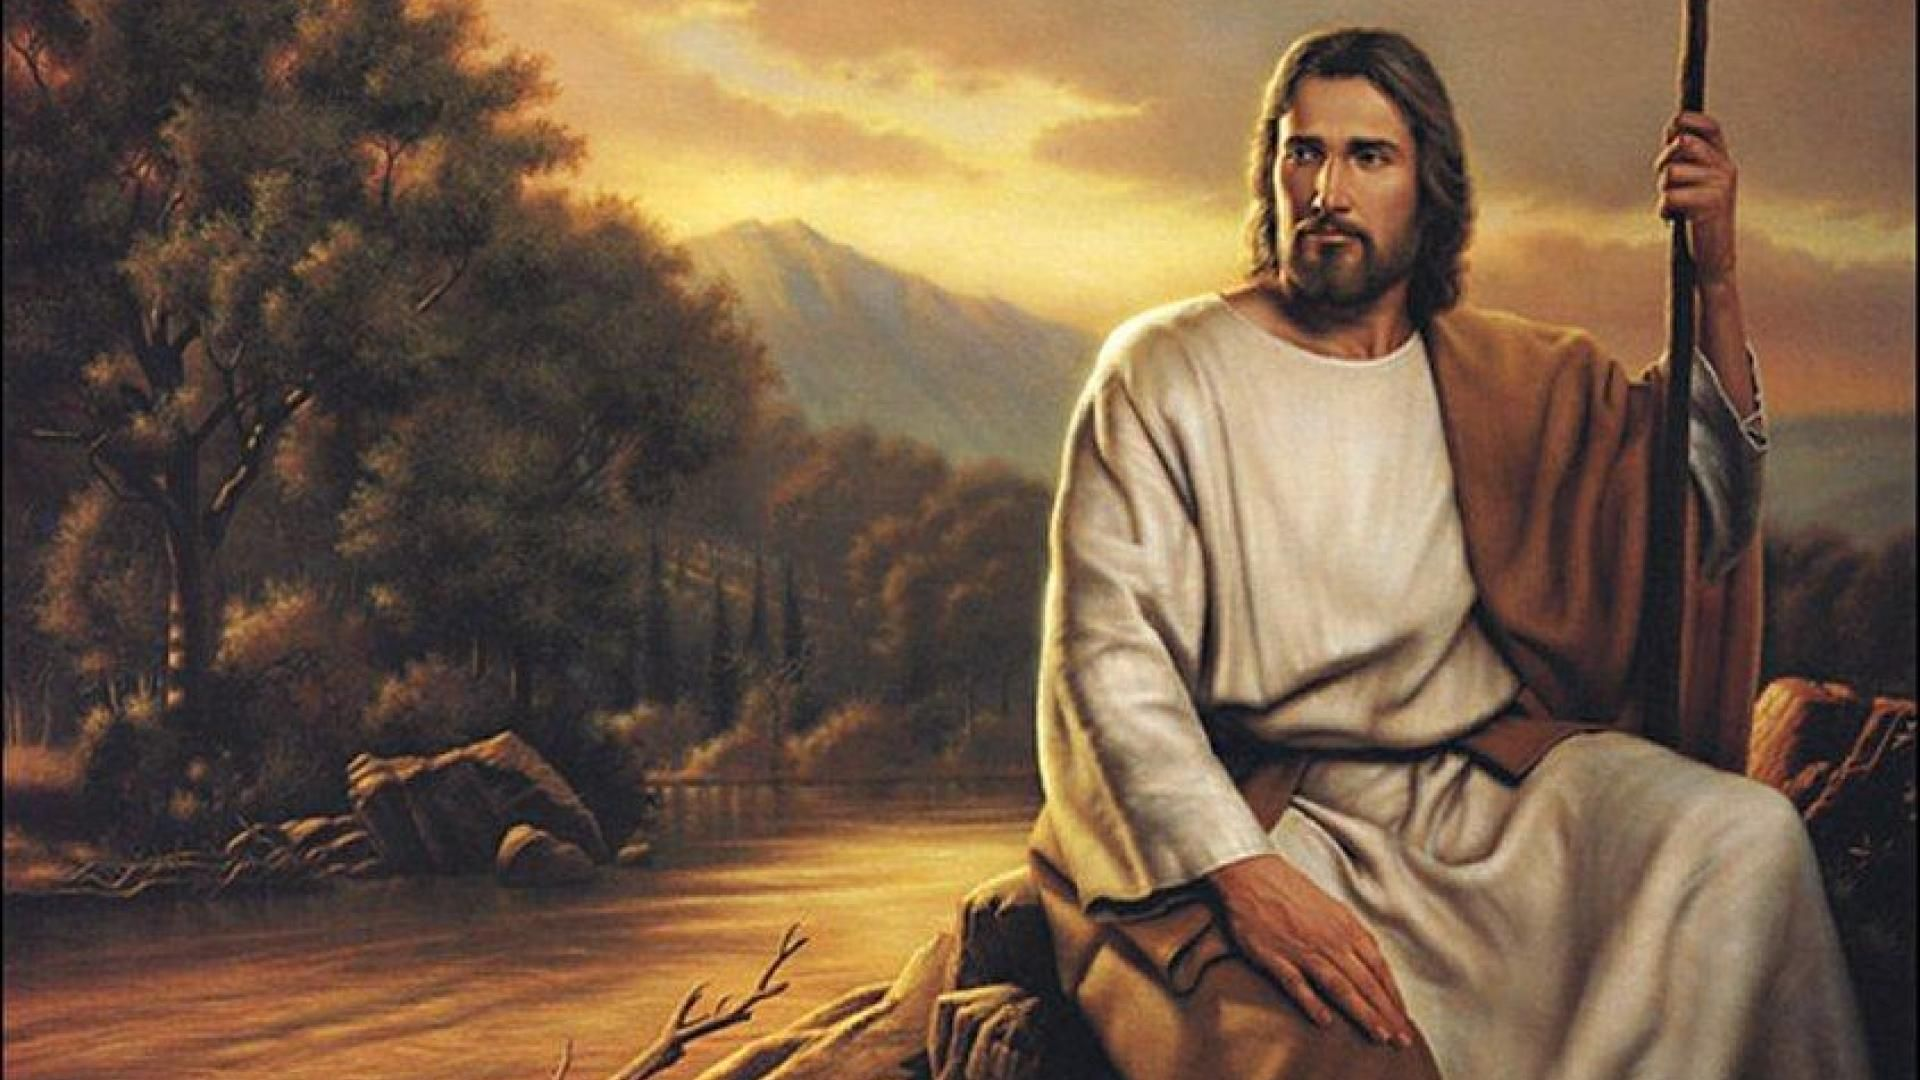 Wallpapers Of Jesus Posted By Michelle Anderson